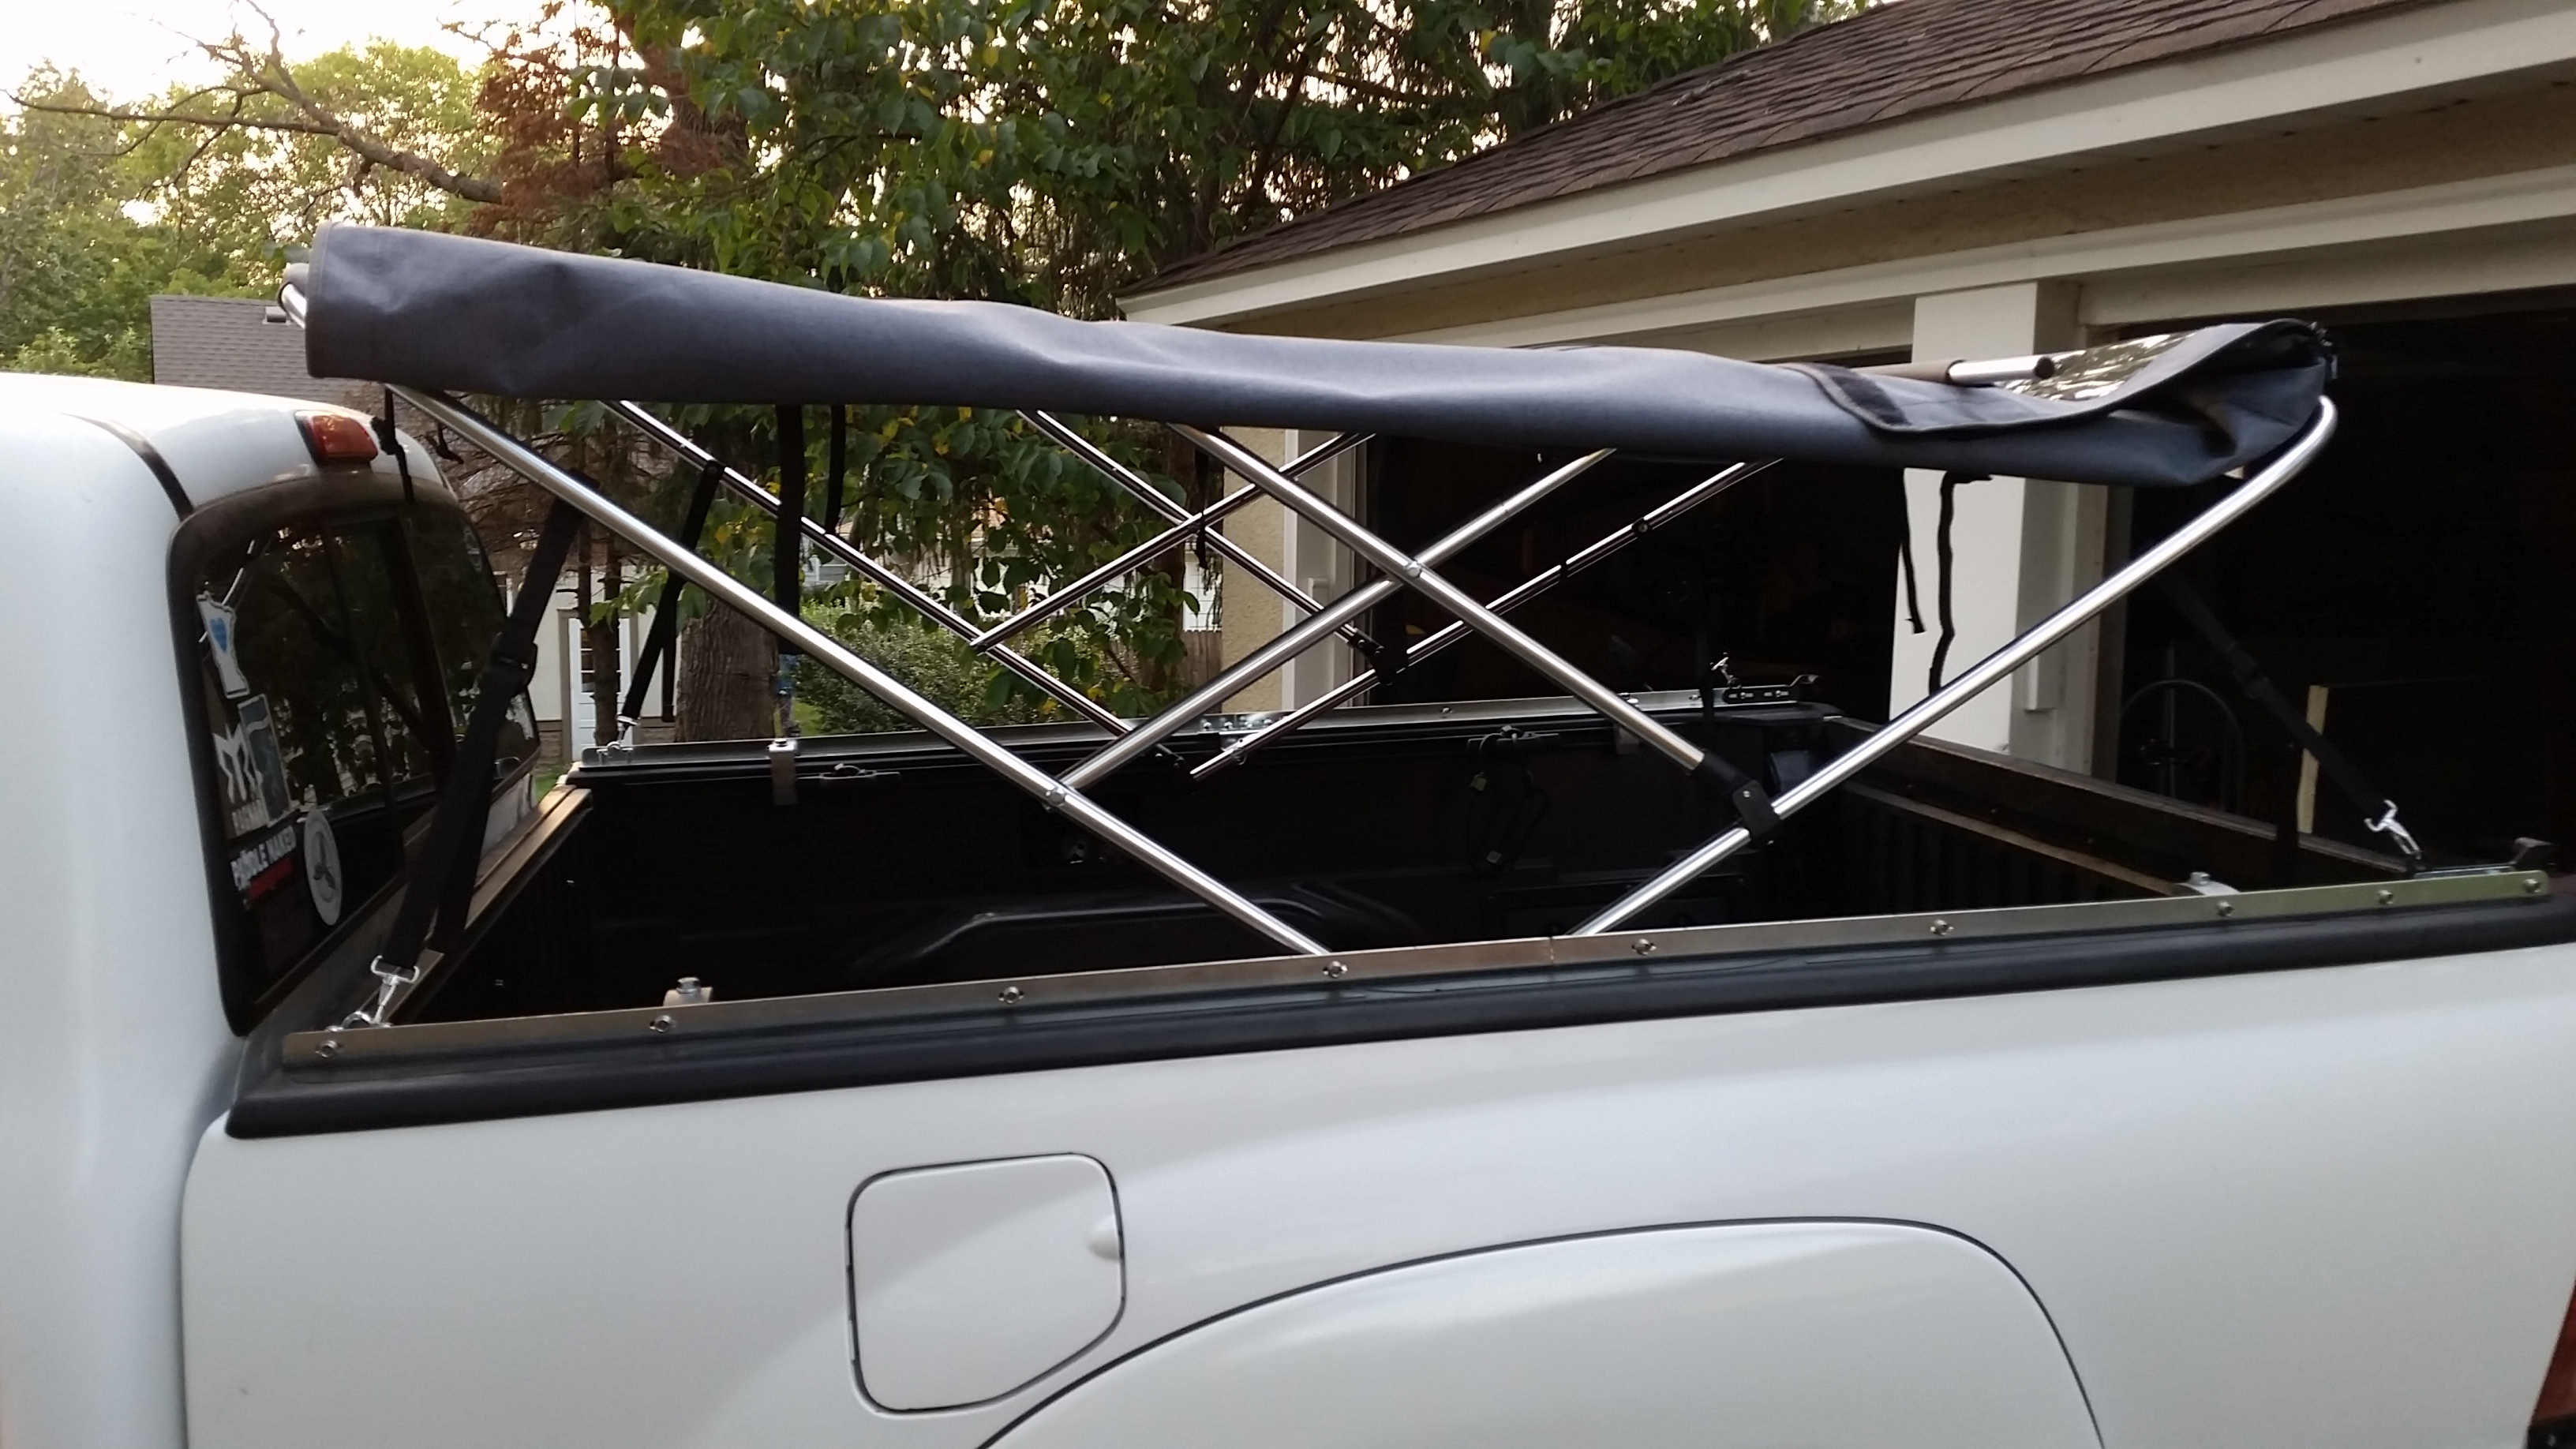 Cover Your Bed: Softopper Truck Bed Top – Monkey with Chainsaw